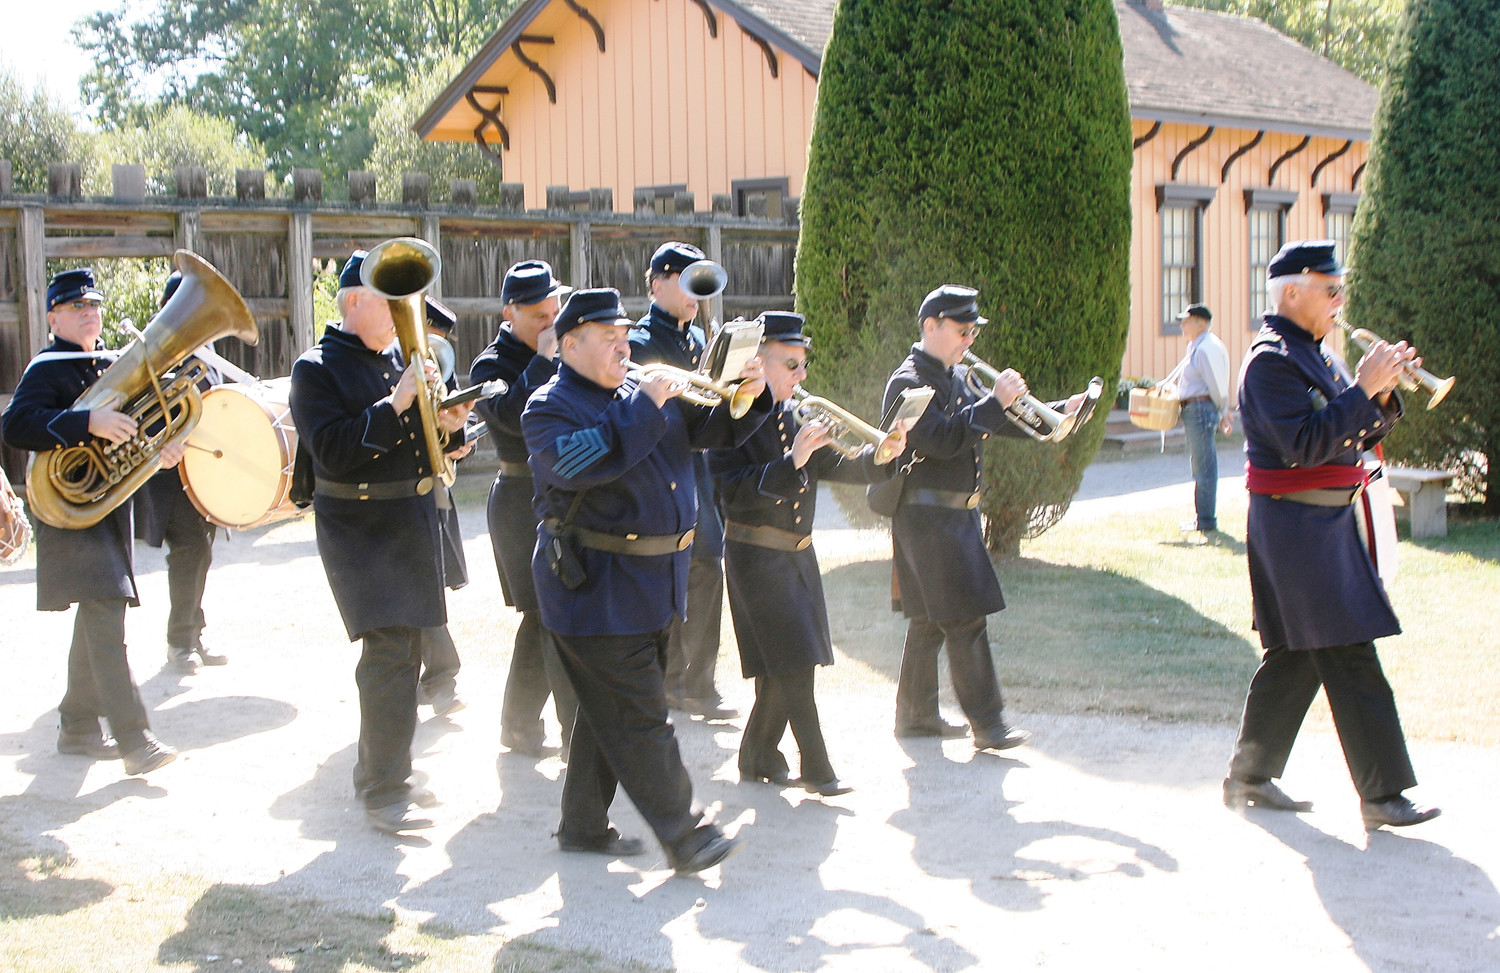 The village's brass band steps smartly in a rousing patriotic salute.